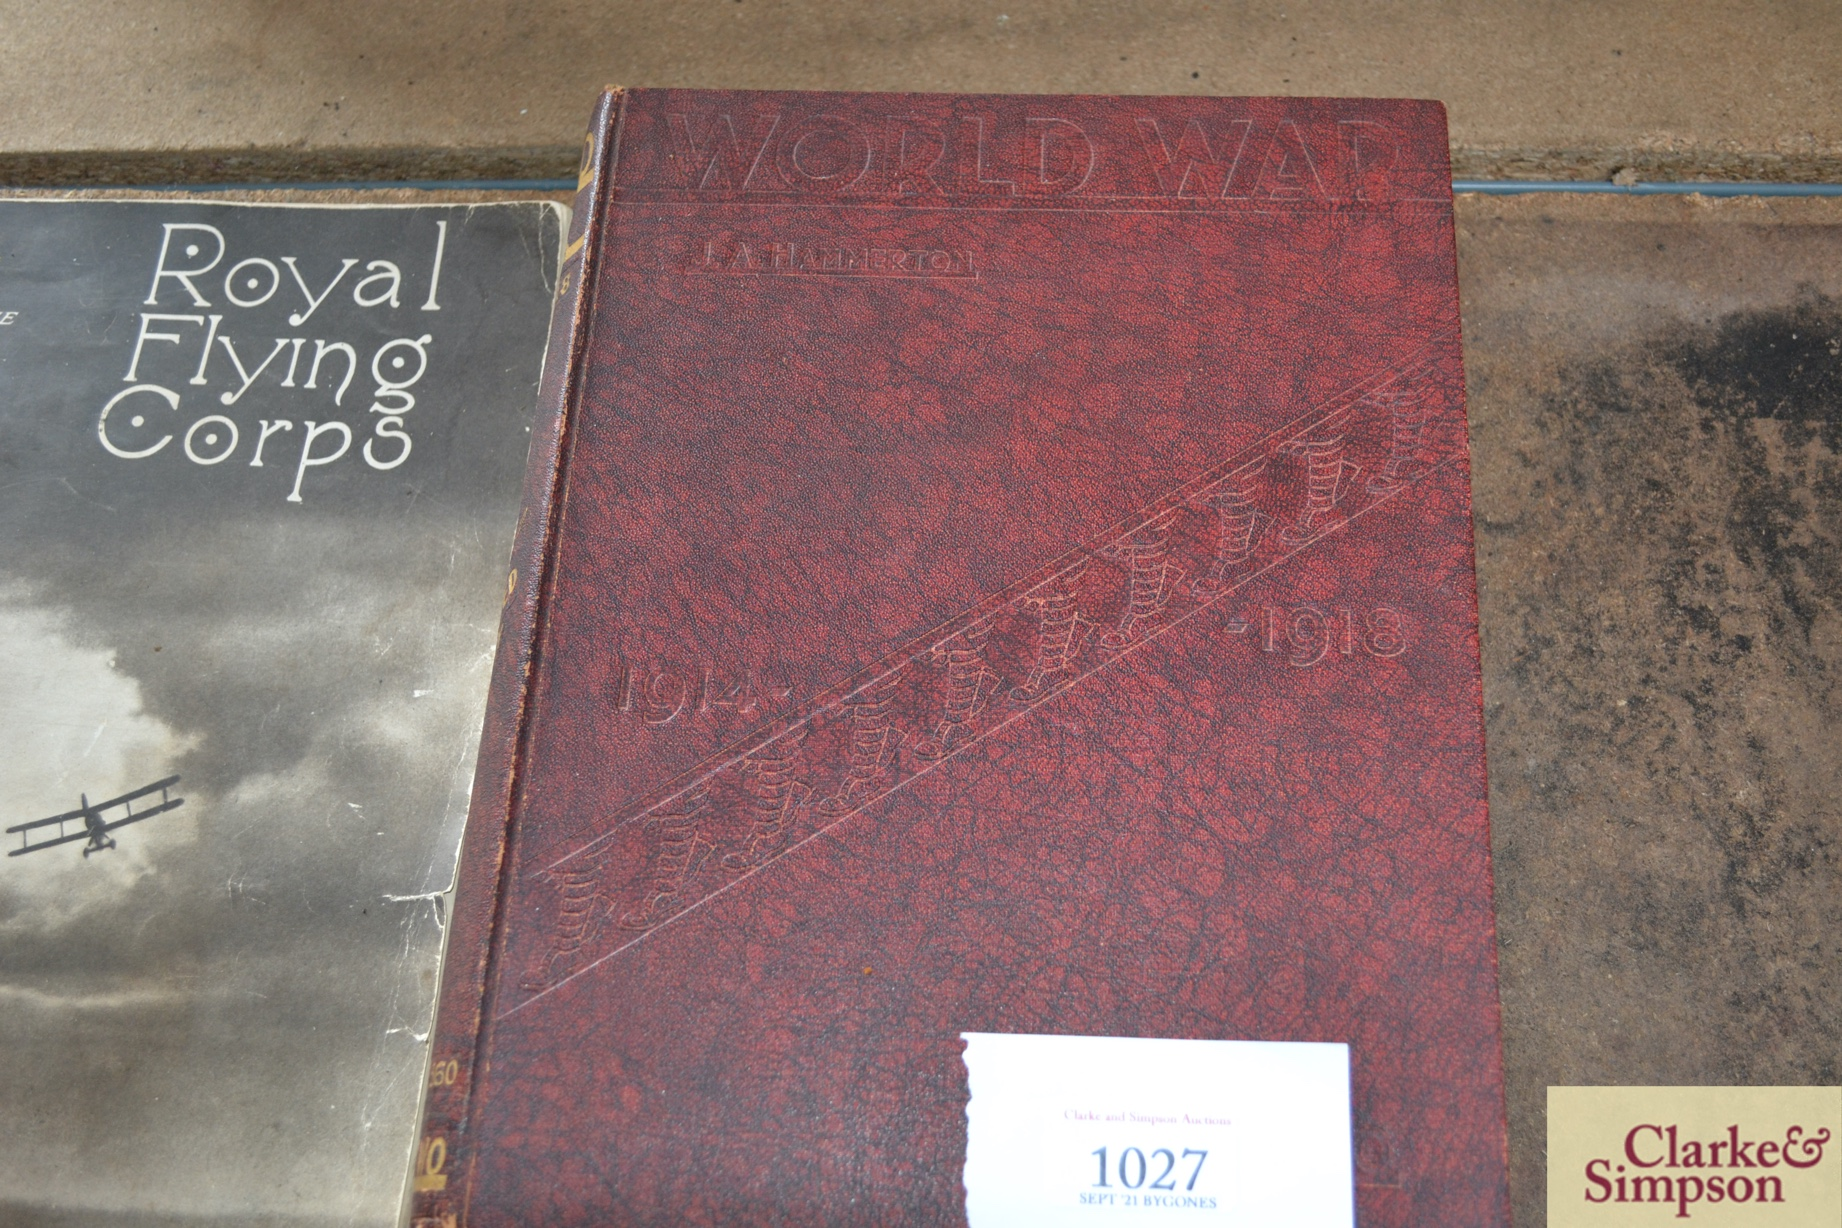 Two volumes of World War 1914-1918, The Royal Flyi - Image 2 of 5